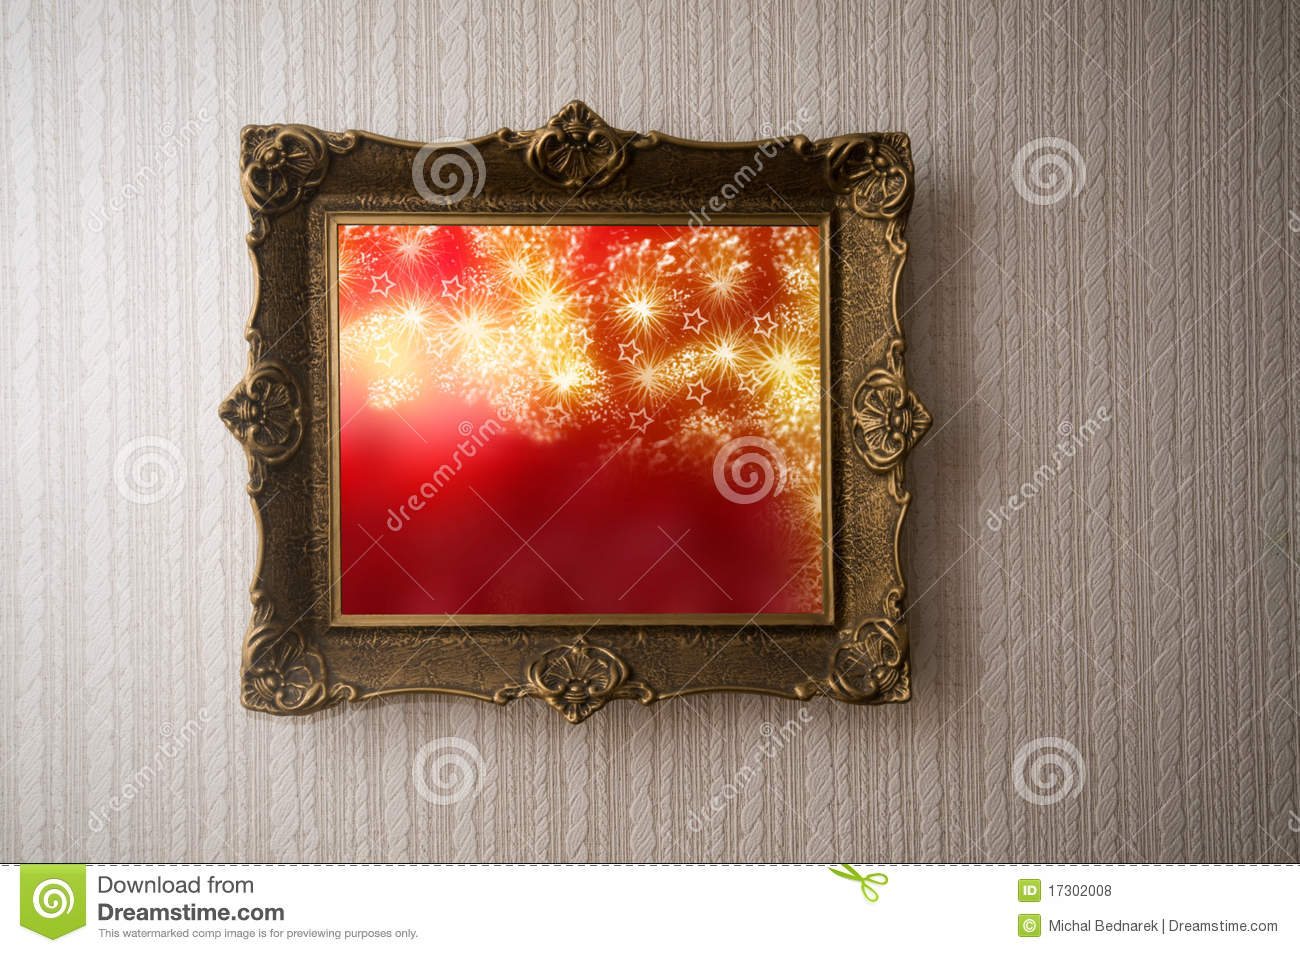 Christmas picture in grunge frame